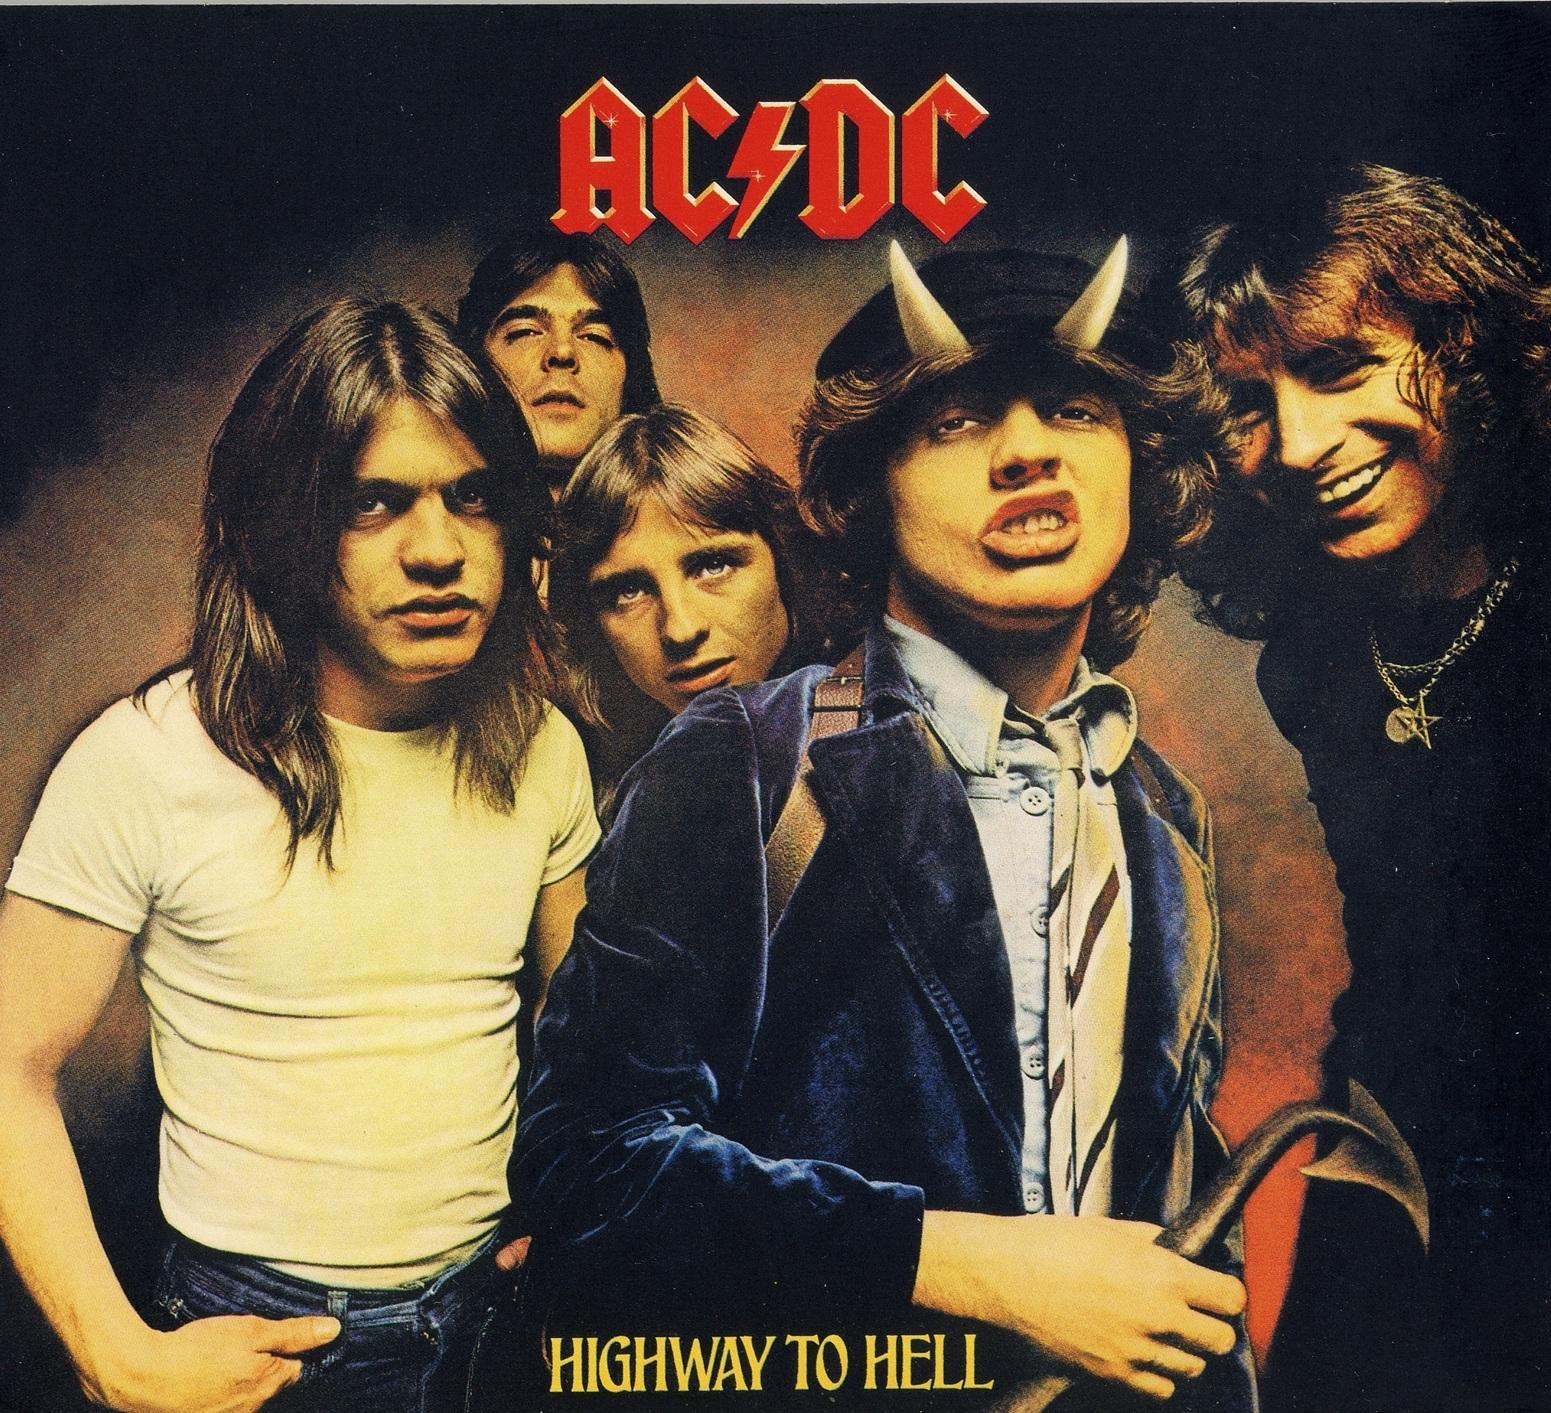 Artist: AC/DC Lyrics: See me ride out of the sunset On your color TV screen Out for all that I can get If you know what I mean Women to the left of me And women to the right Ain't got no gun Ain't got no knife Don't you start no fight